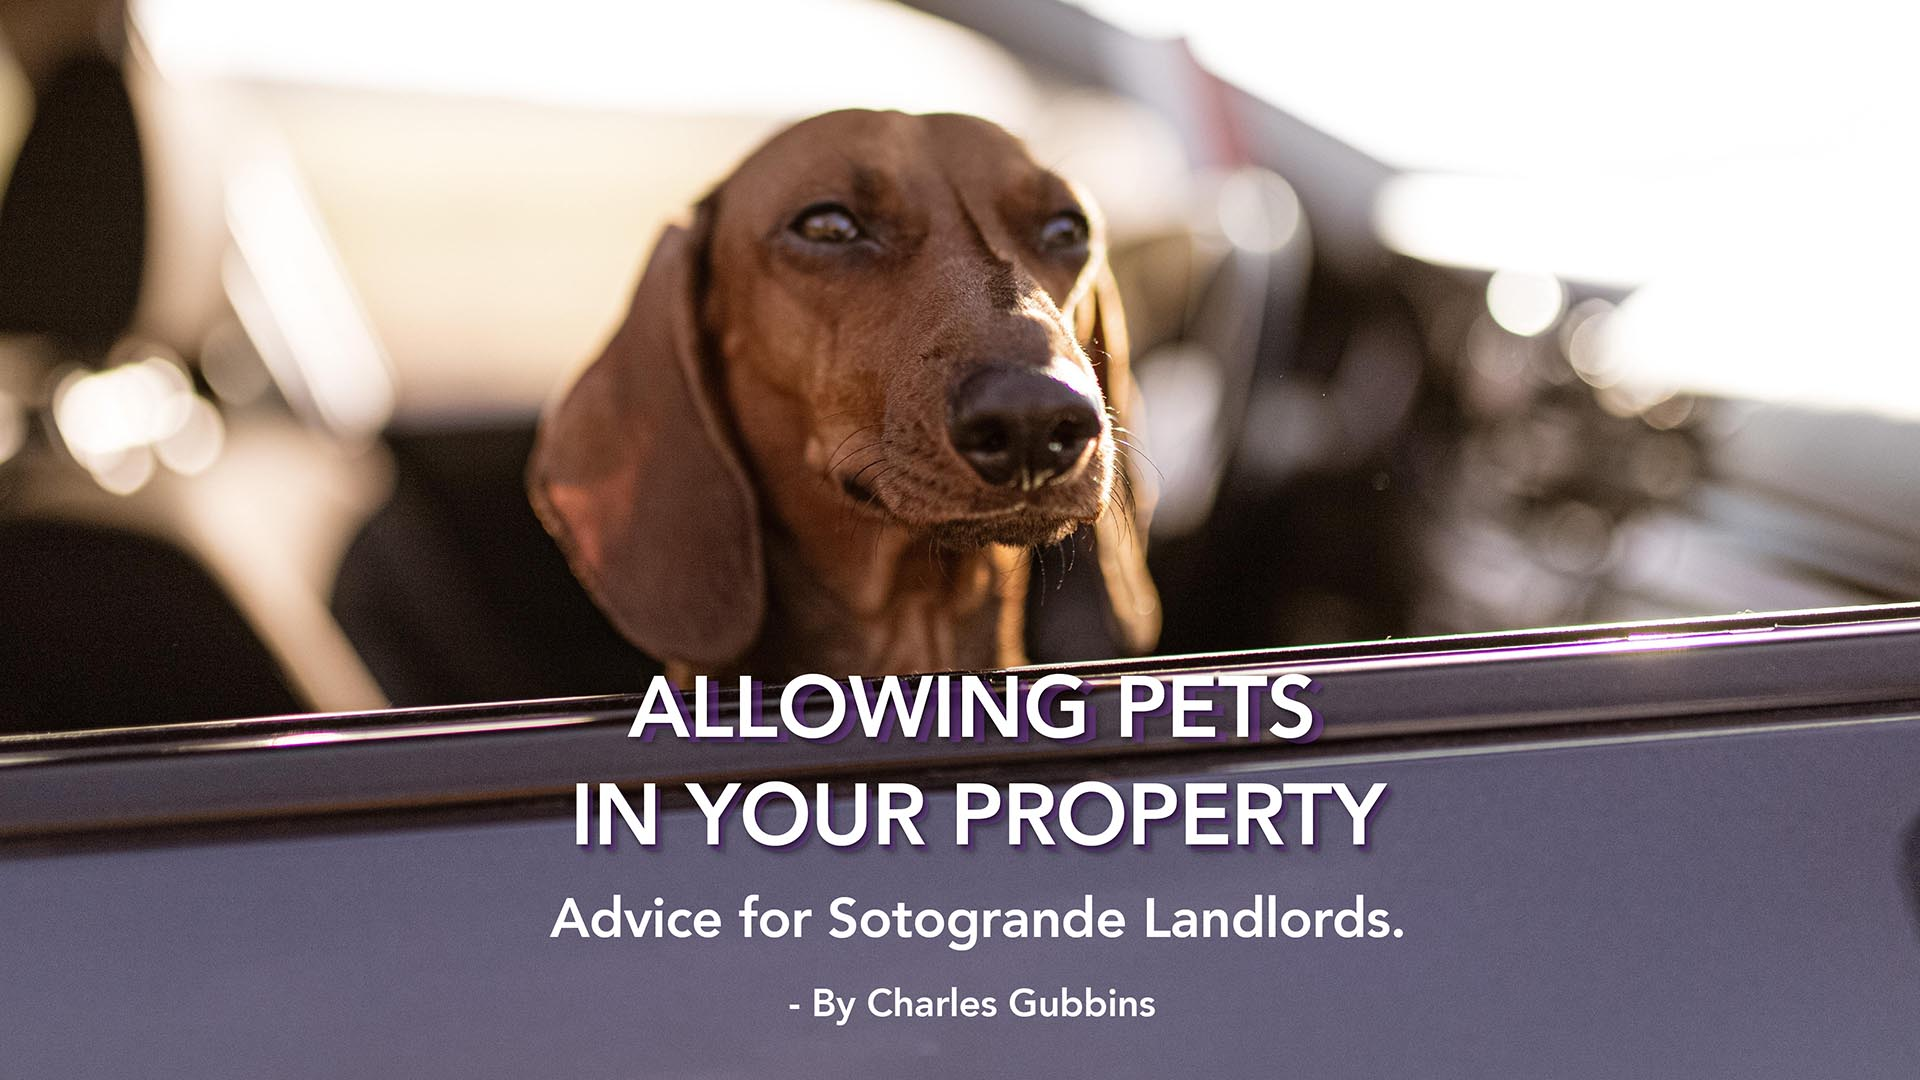 Allowing Pets in your Sotogrande Property: Advice for LANDLORDS.